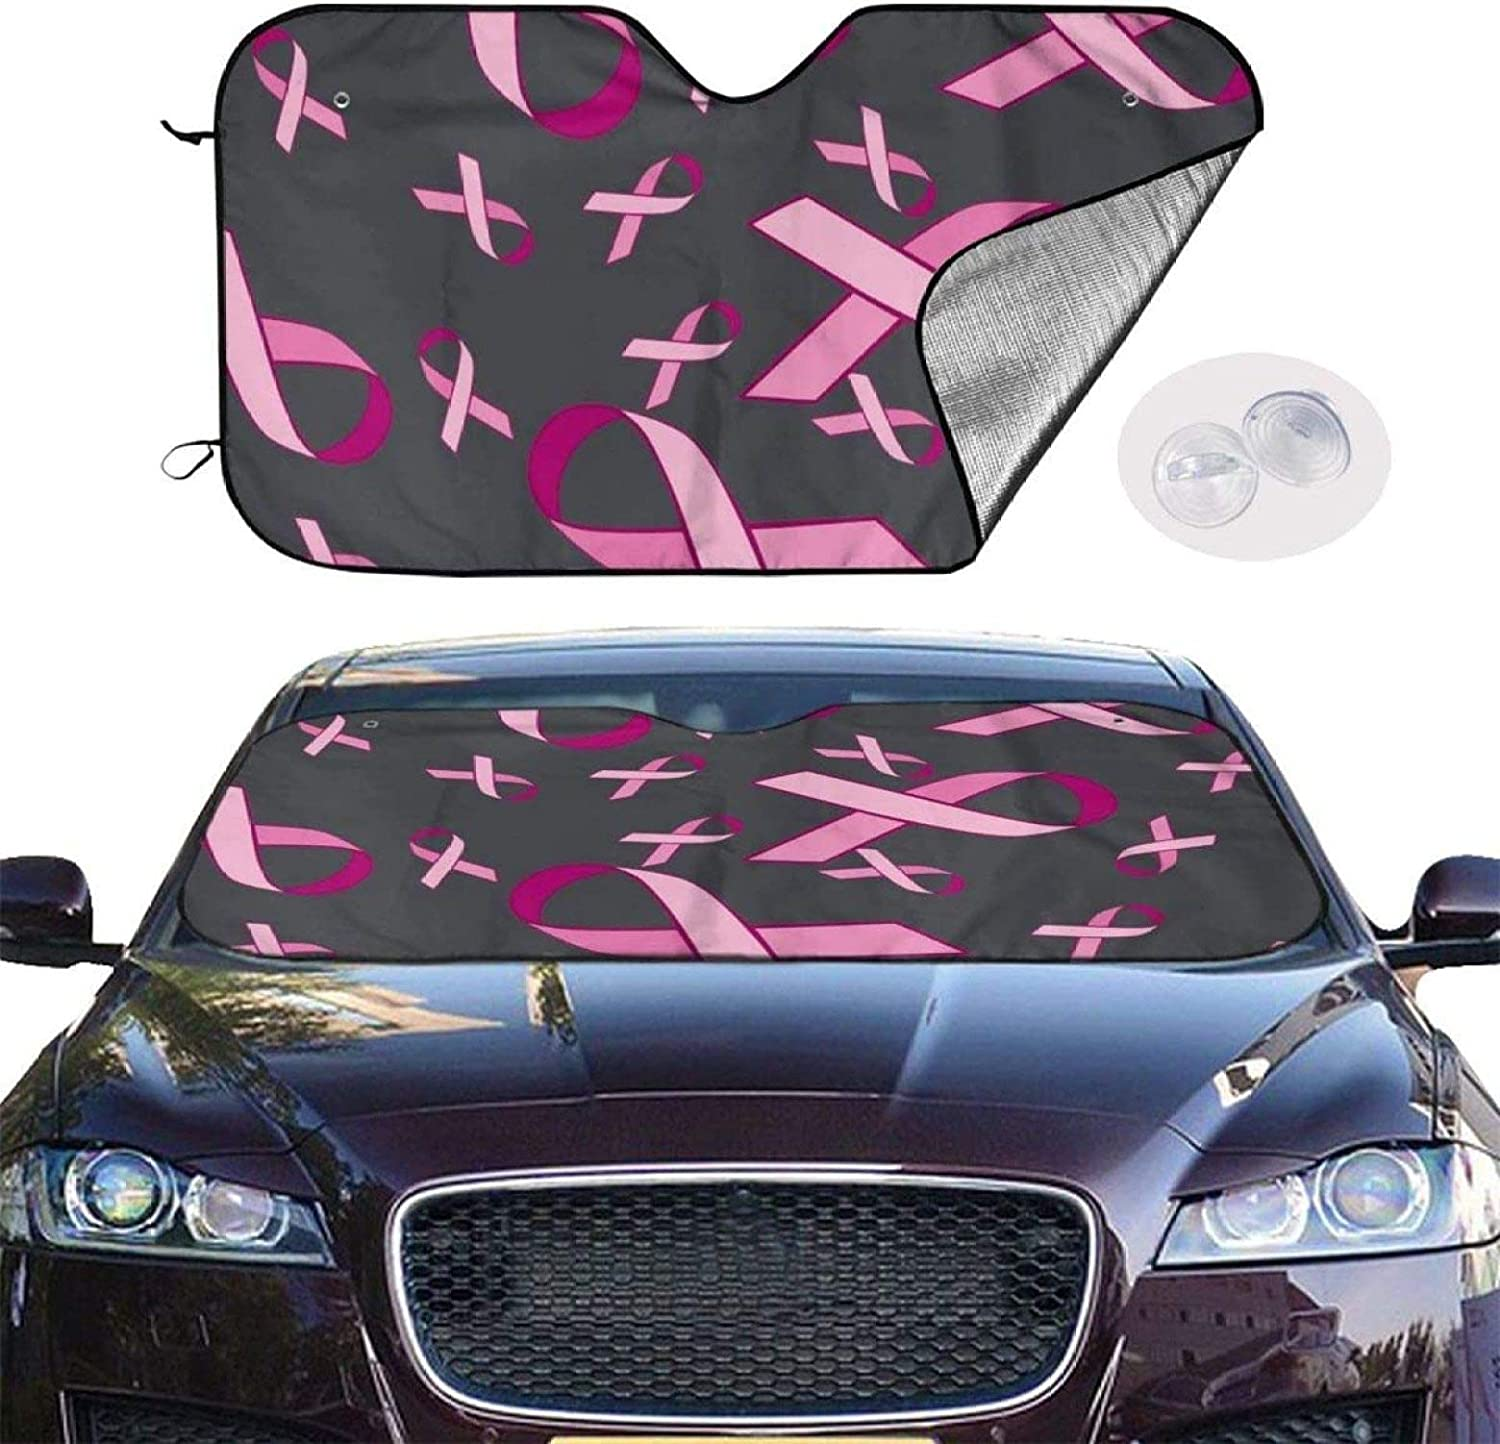 Thewar Breast Cancer Awareness Pink Ribbon Car Windshield Sunshade Foldable Front Window Windscreen Cover Fit UV Ray Reflector Outdoor Vehicle Accessories